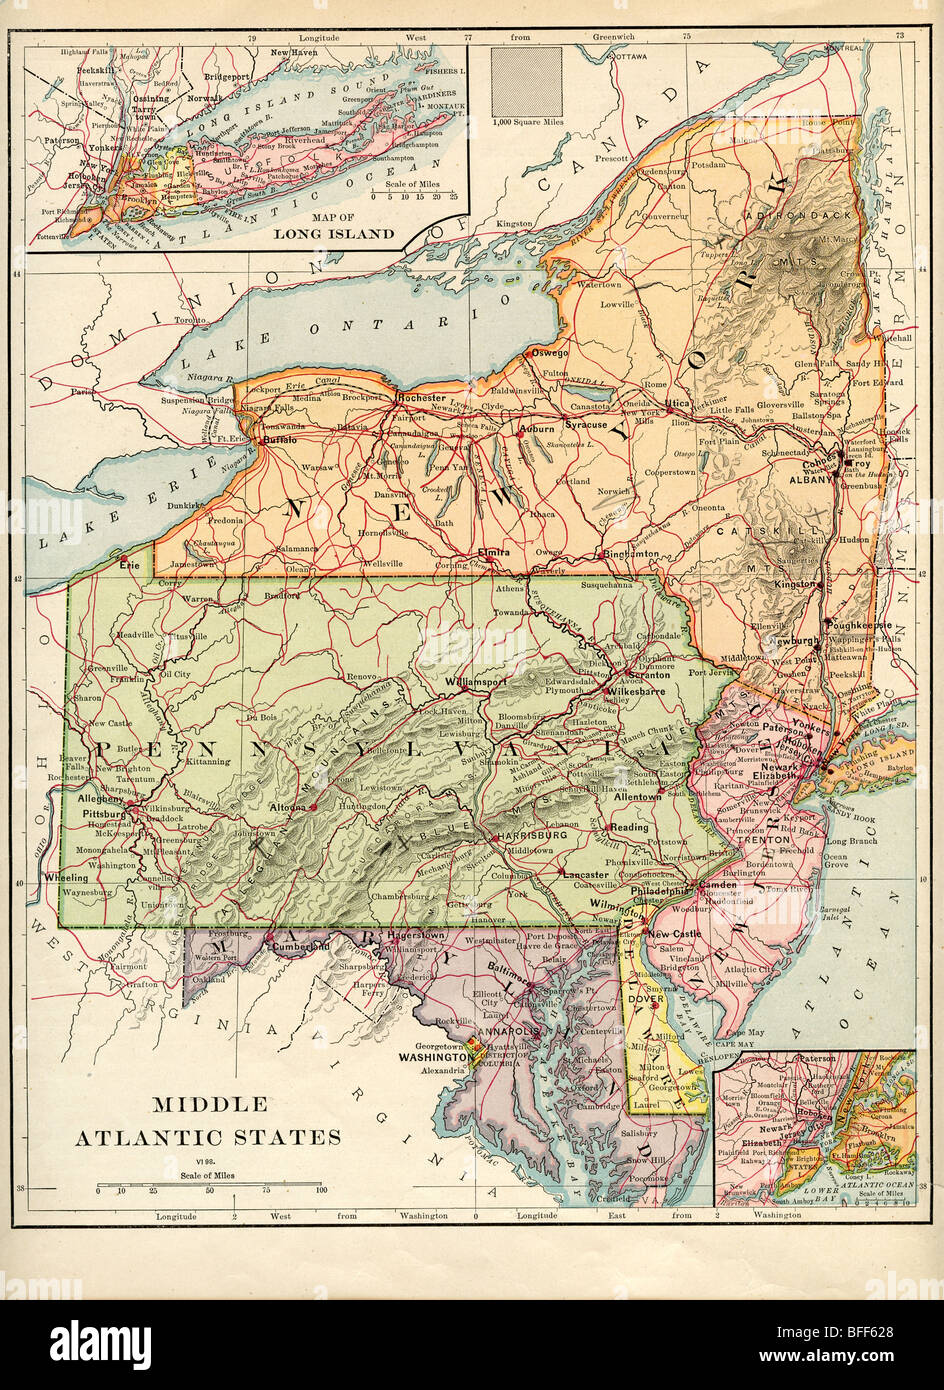 Mid Atlantic States Map.Original Old Map Of Mid Atlantic States From 1879 Geography Textbook